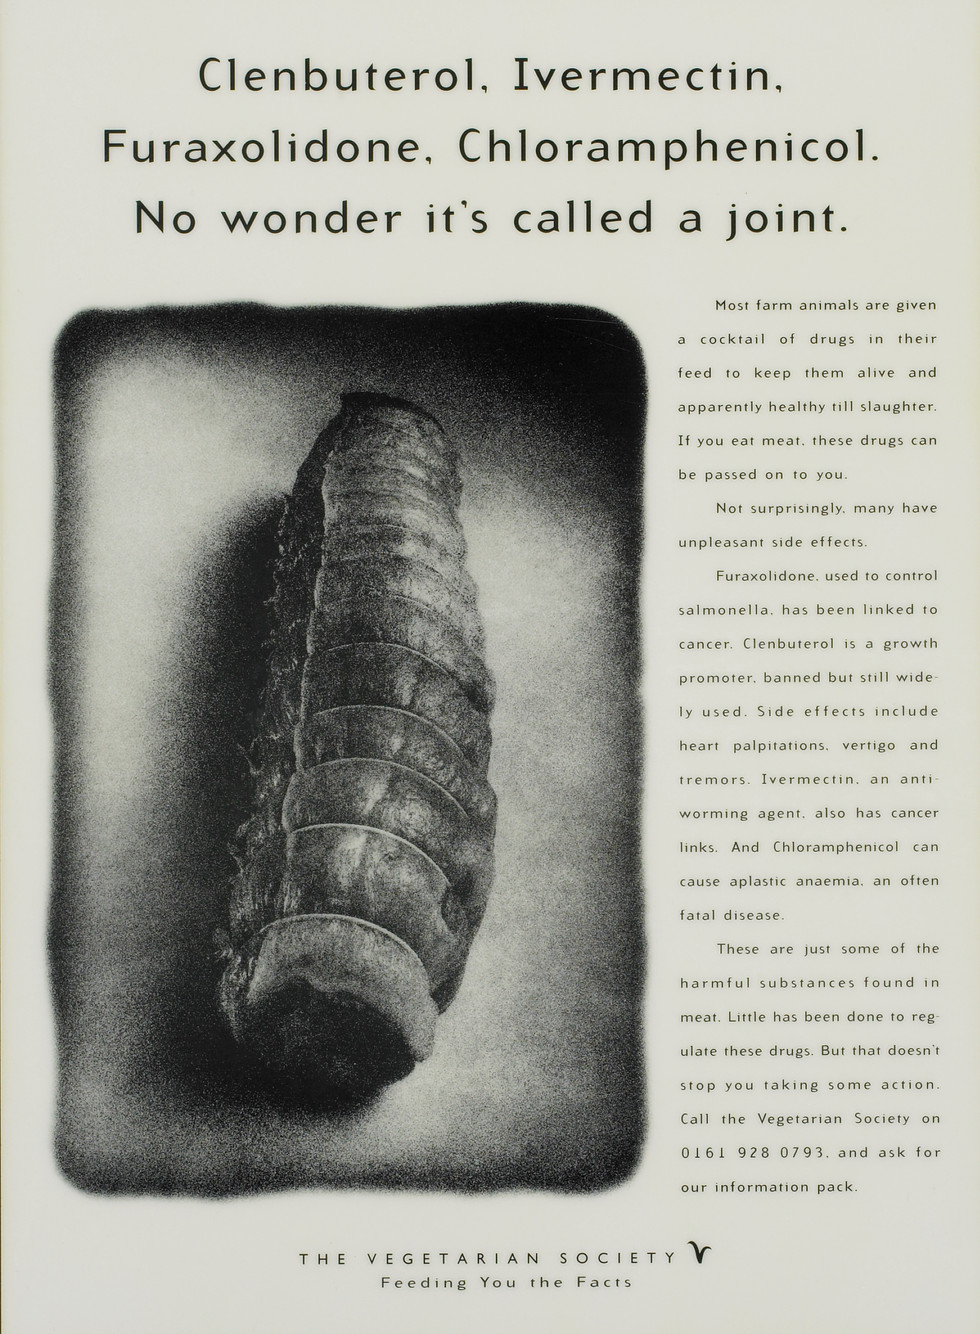 JOINT AD